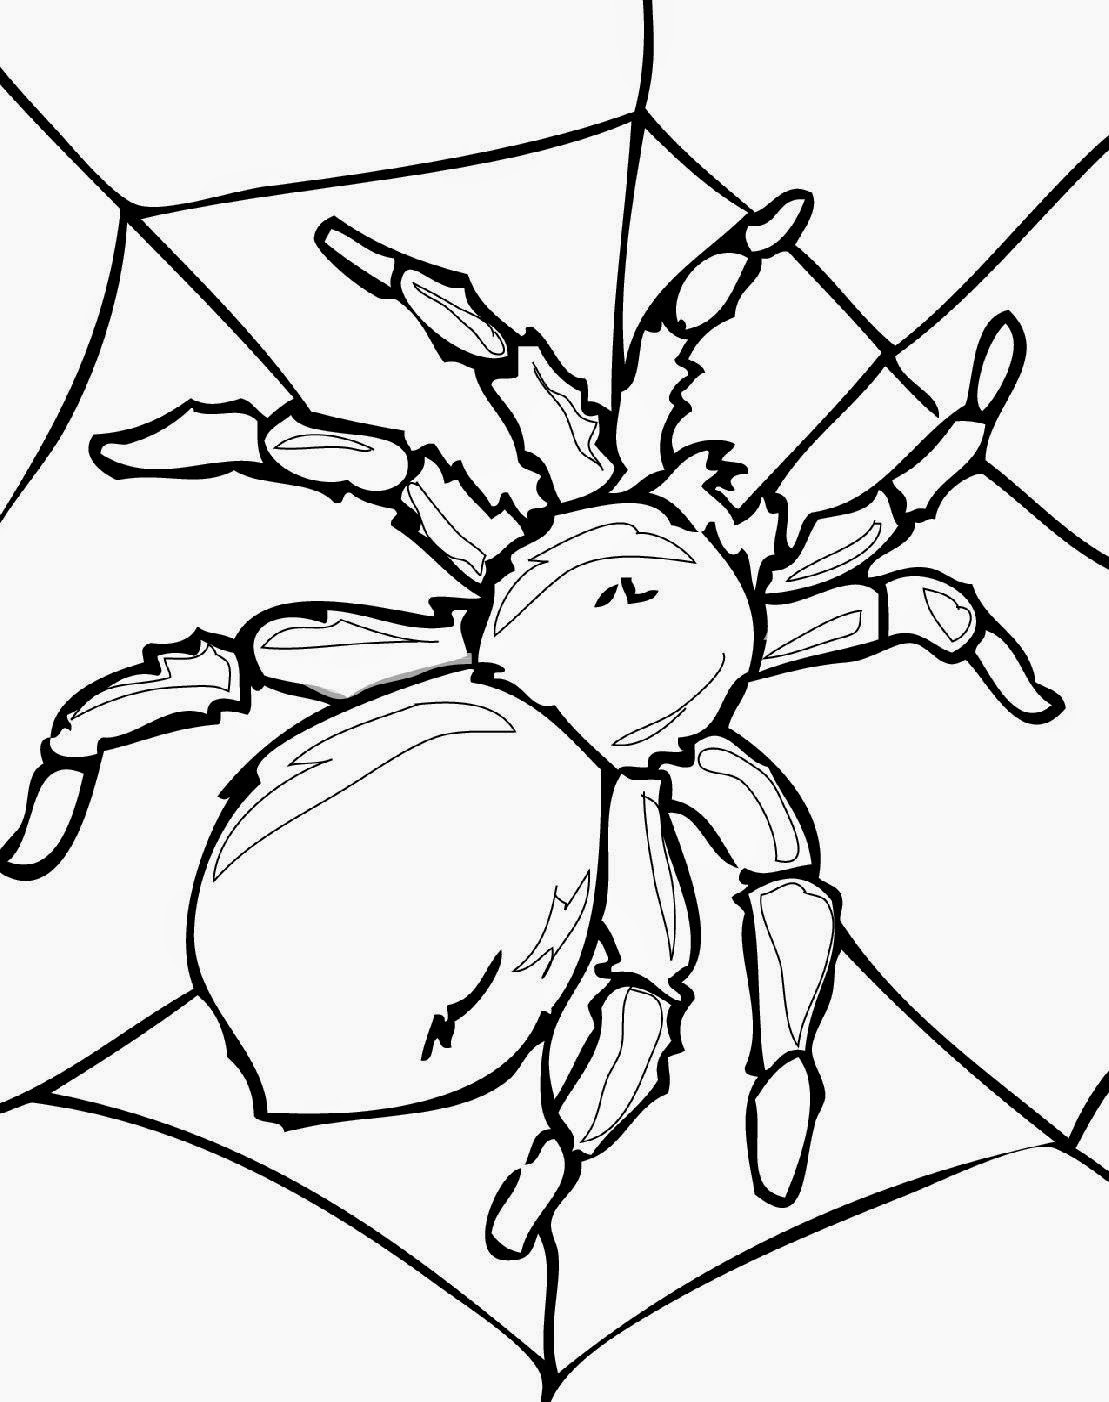 coloring pages bugs top 17 free printable bug coloring pages online bugs coloring pages